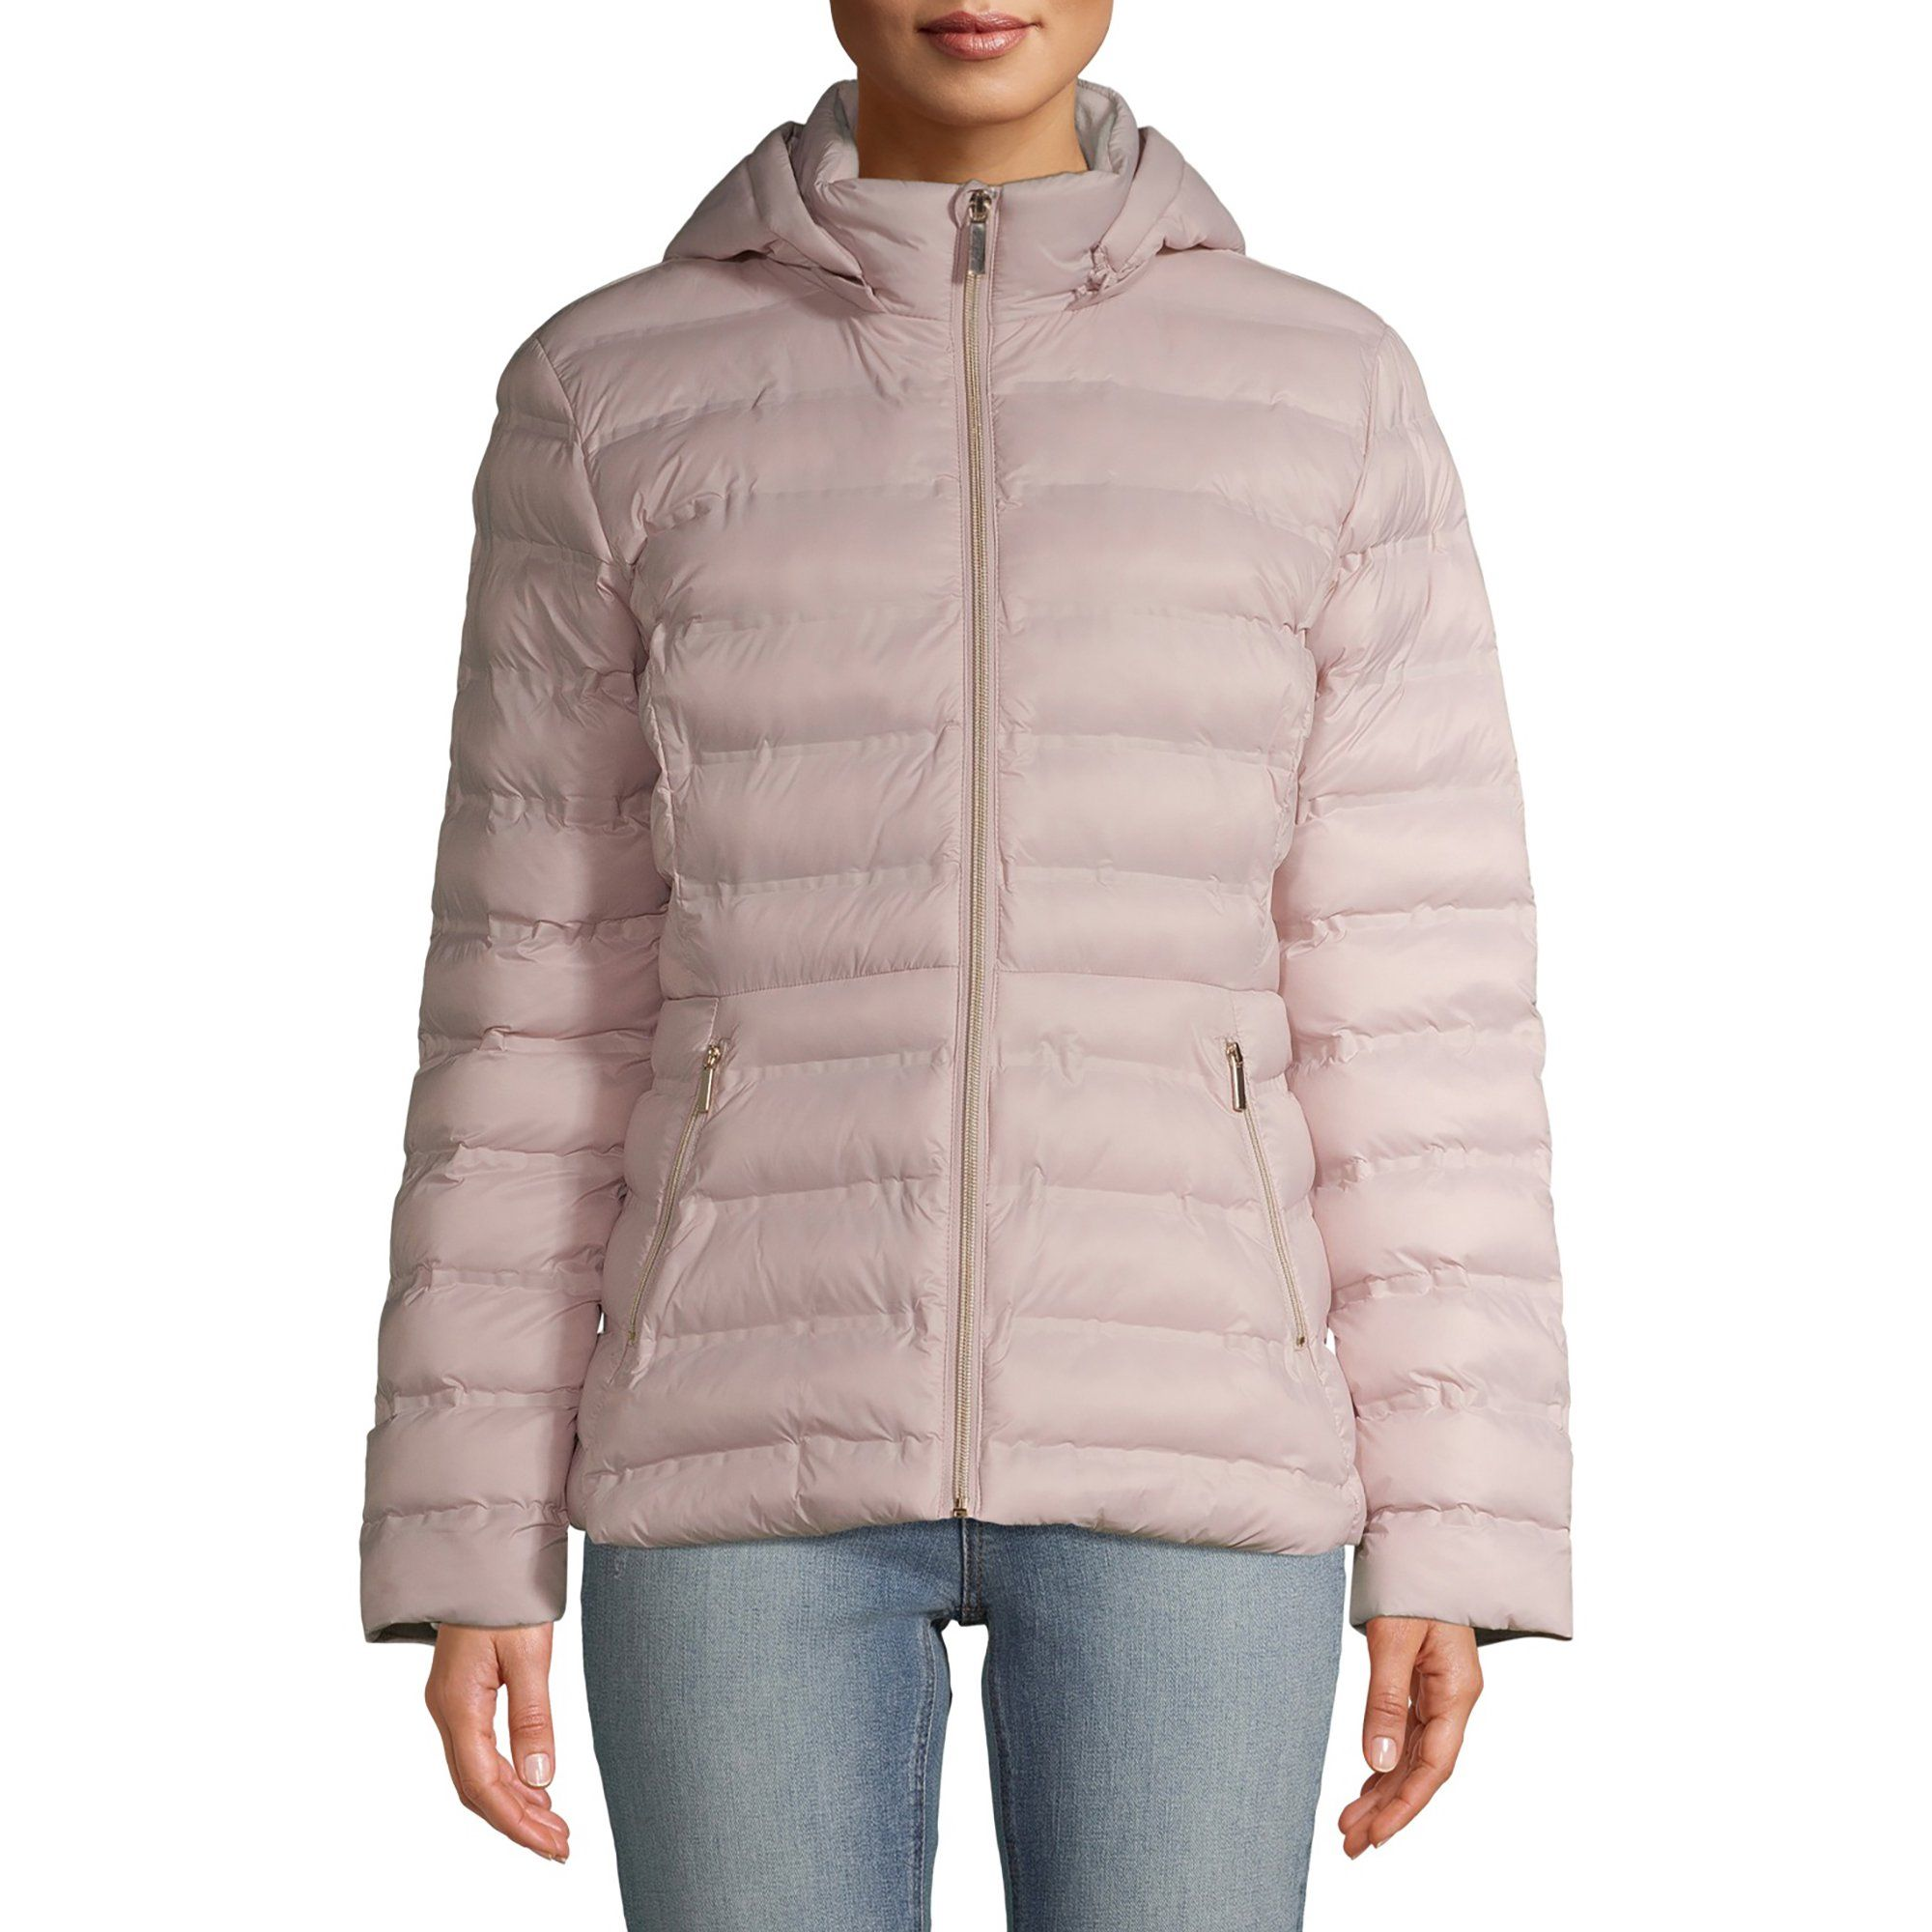 Time And Tru Time And Tru Women S Packable Puffer Jacket With Hood Walmart Com Puffer Jackets Hooded Jacket Jackets [ 2000 x 2000 Pixel ]